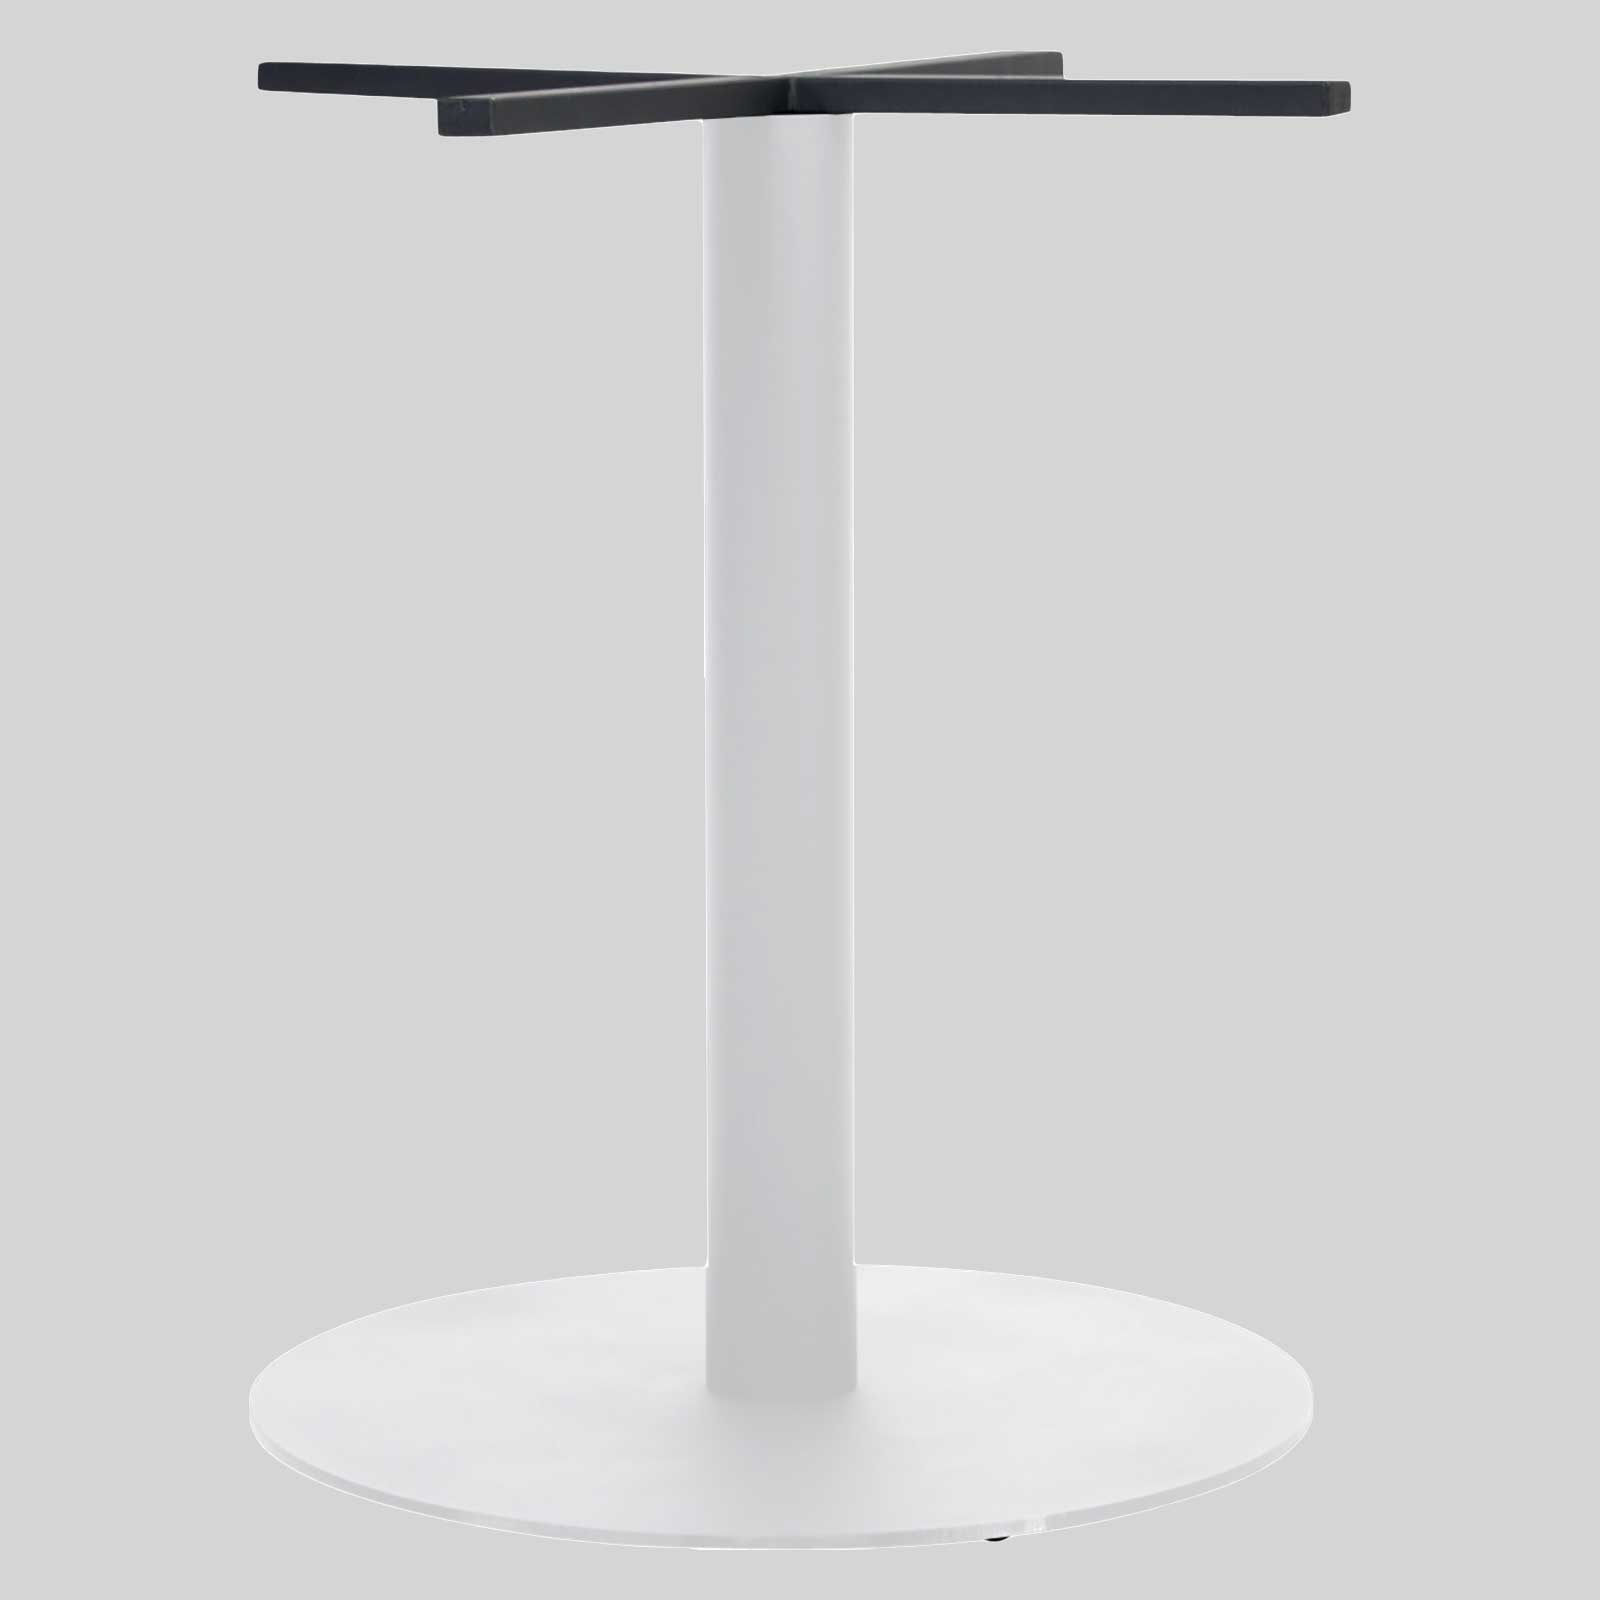 Commercial Table Bases for Restaurants Carlton Round : Carlton 54 Dining Commercial Table Base White 1 from conceptcollections.com.au size 1600 x 1600 jpeg 19kB